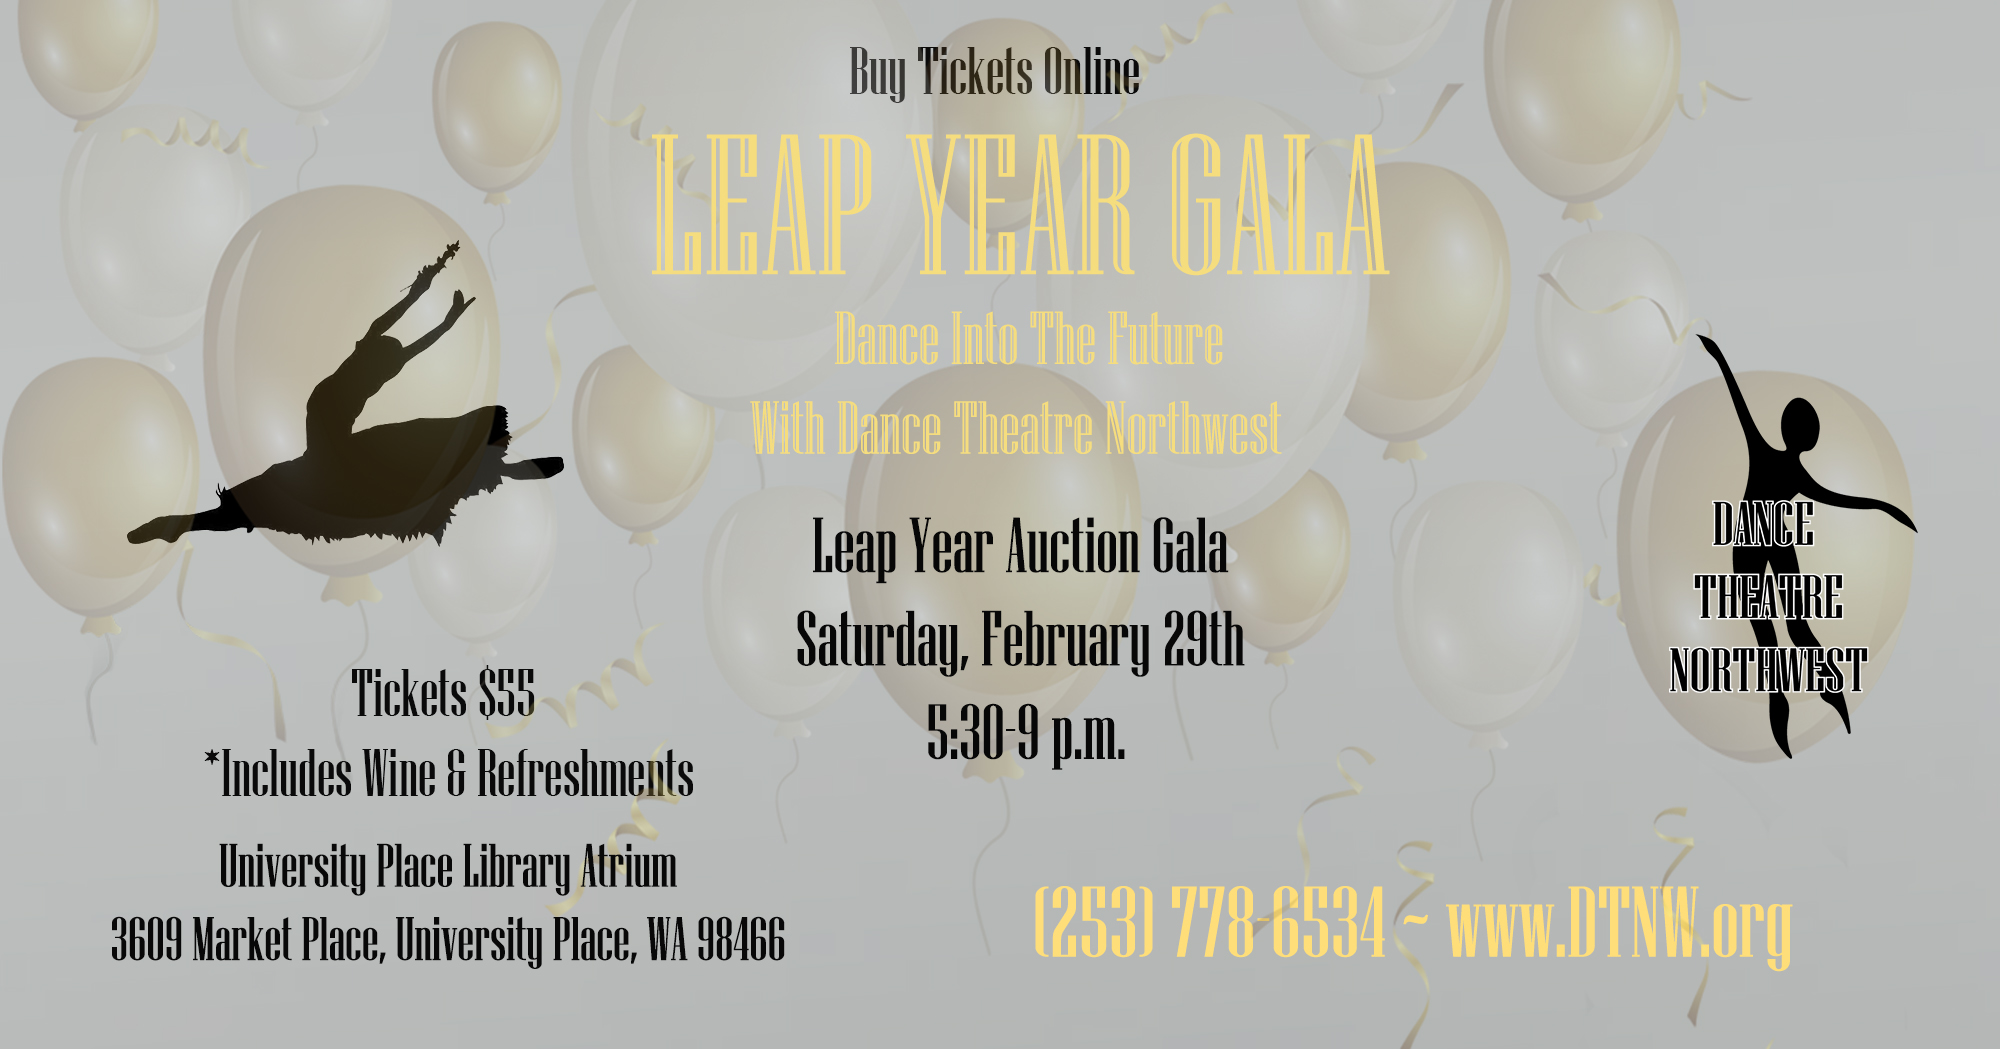 Auction Gala Ad 2020 for facebook